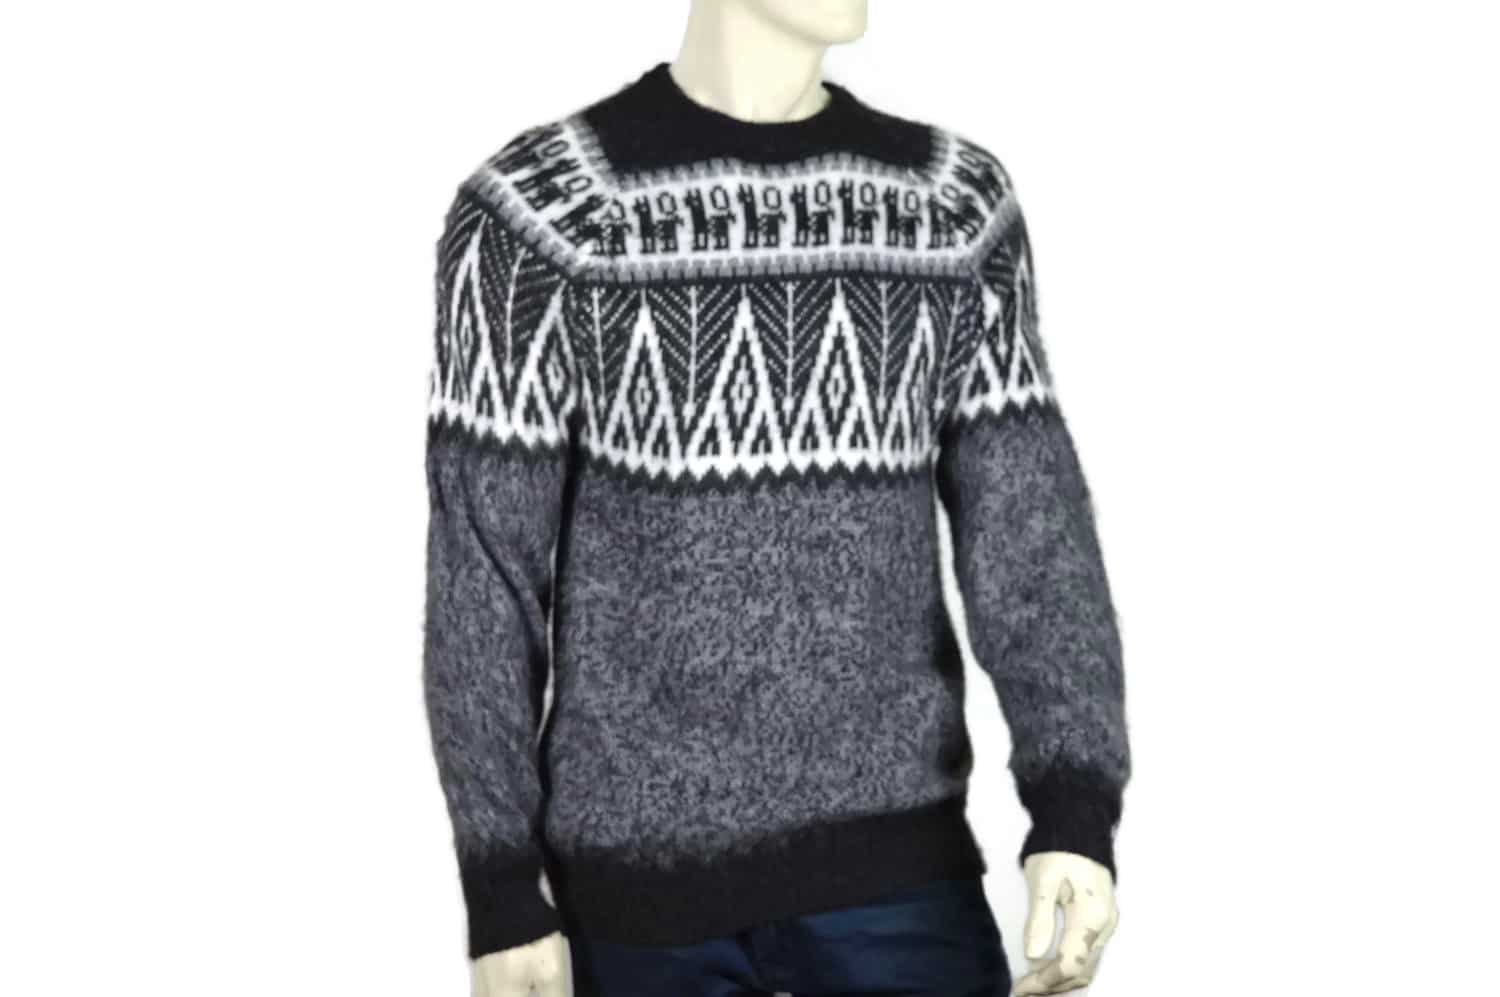 Wilber Calapuja of Peru designs the men's pullover, which features a zippered collar. Patterned Blue and Burgundy Alpaca Men's Knit Sweater,